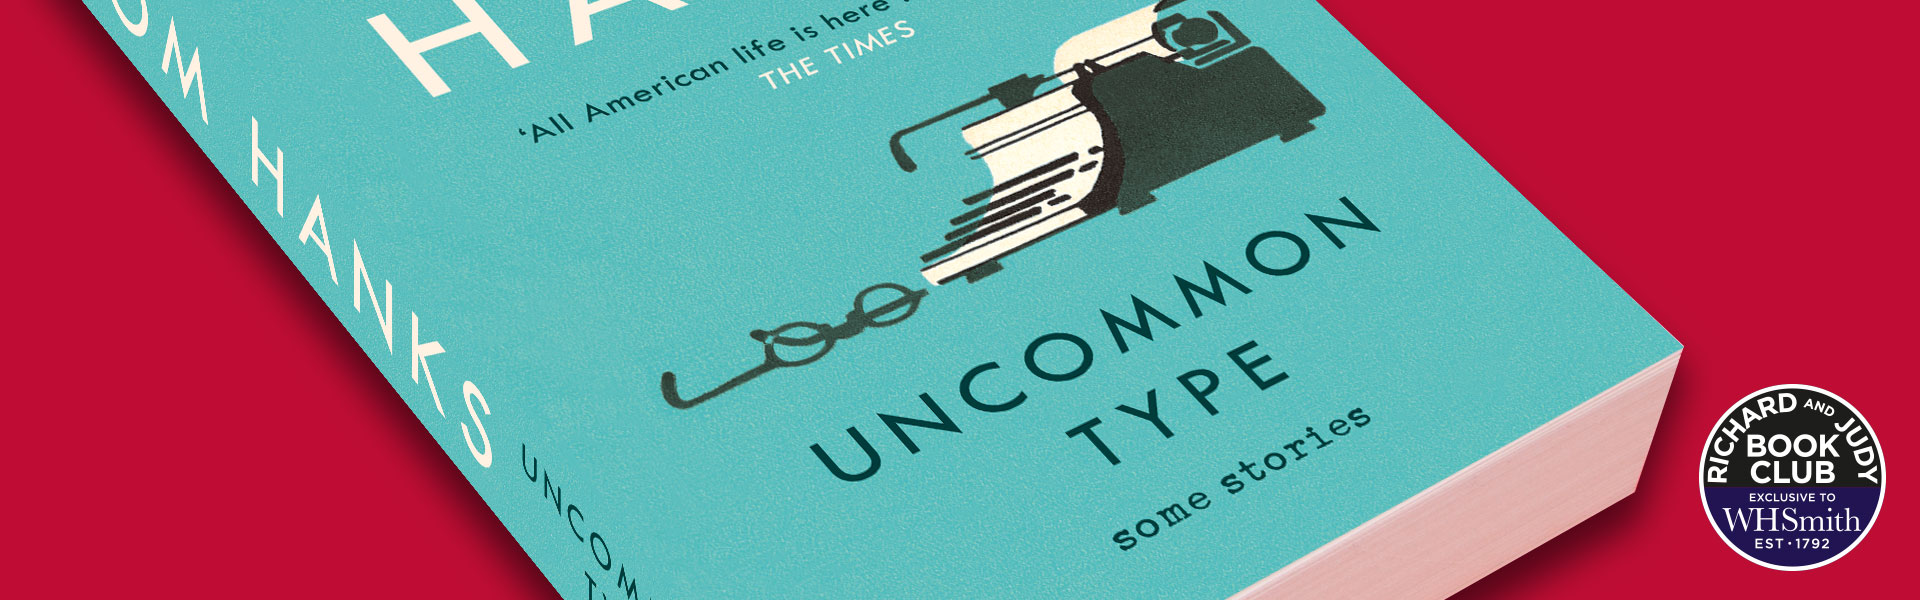 Richard And Judy Introduce Uncommon Type: Some Stories By Tom Hanks